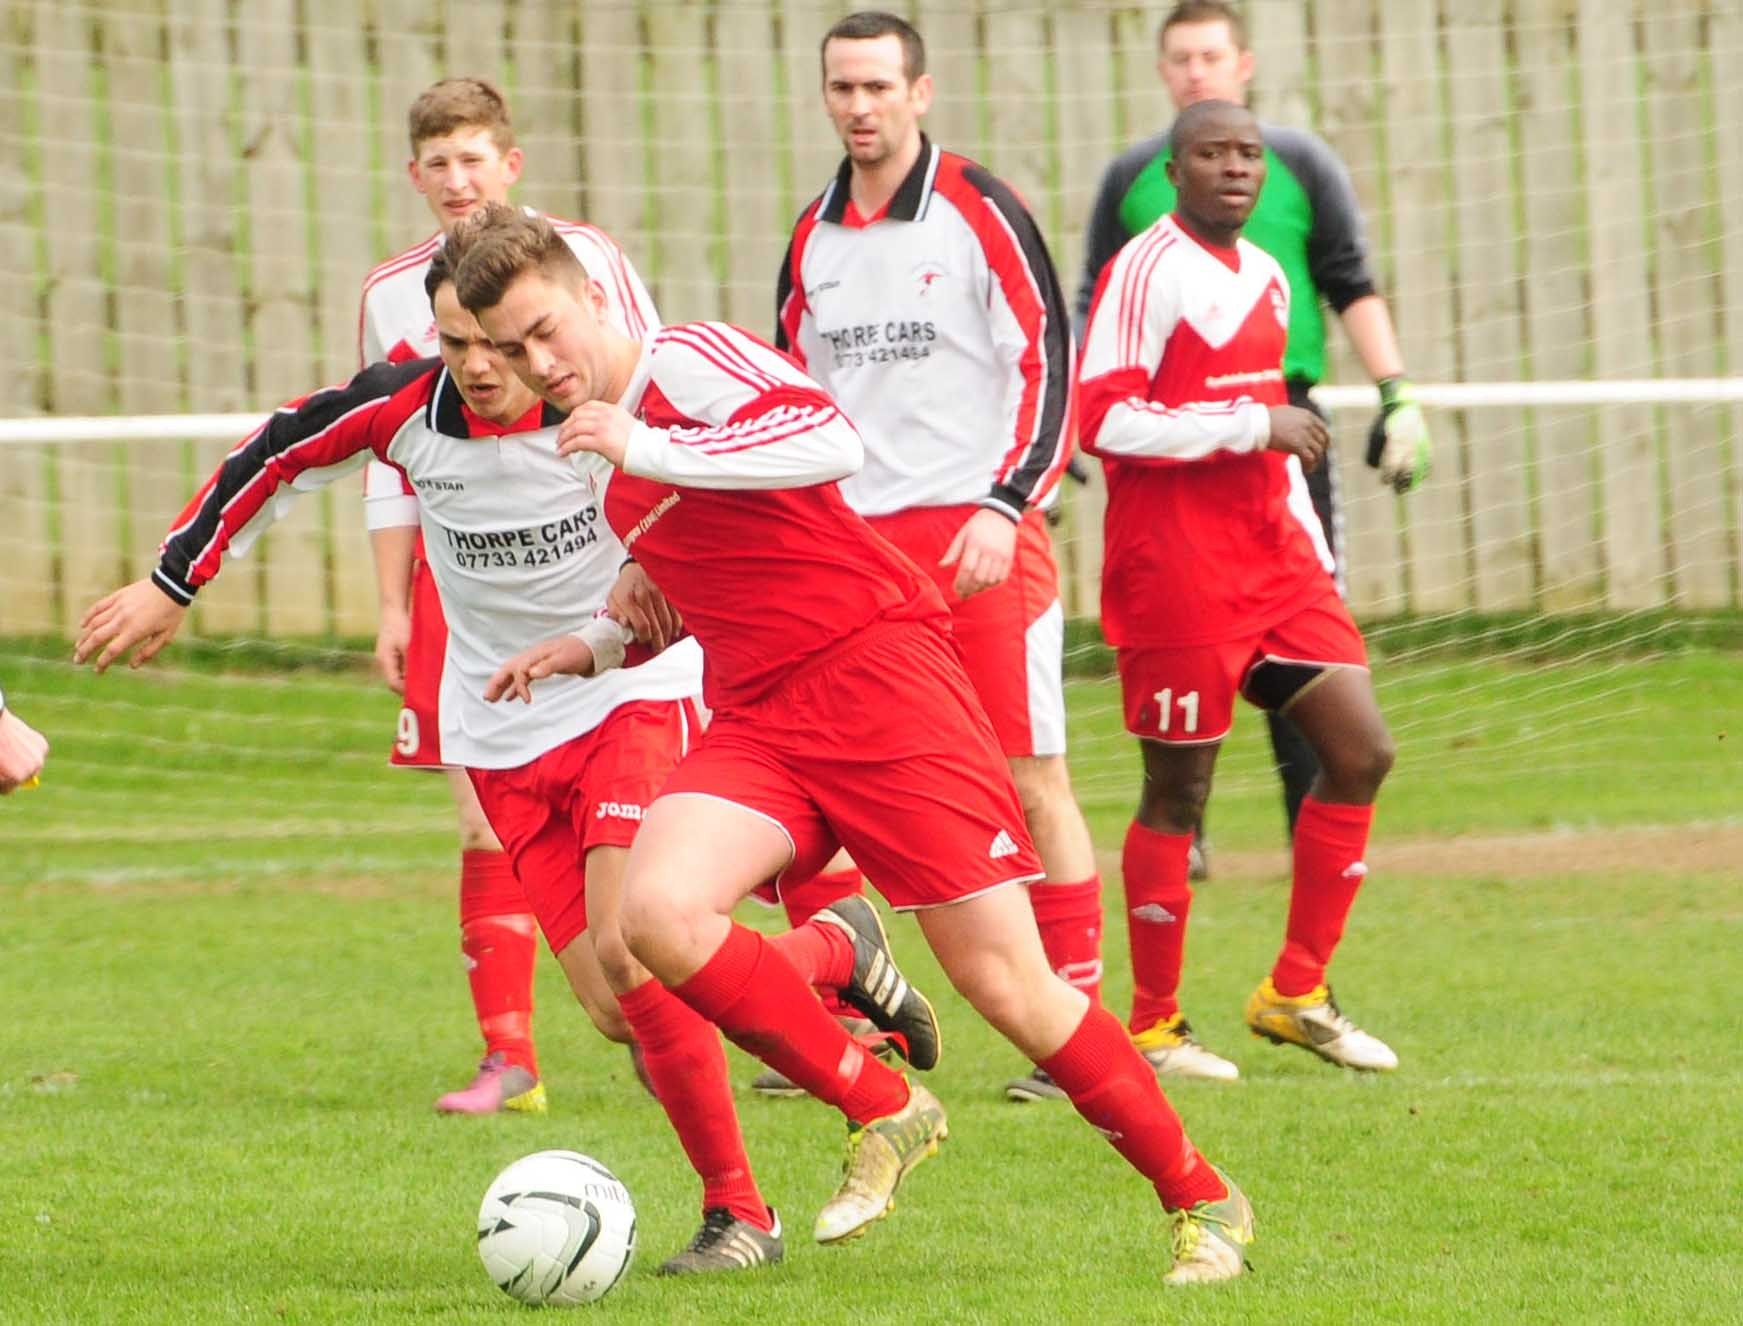 Kirkbymoorside v  Selby. Ryan Rivis in action.